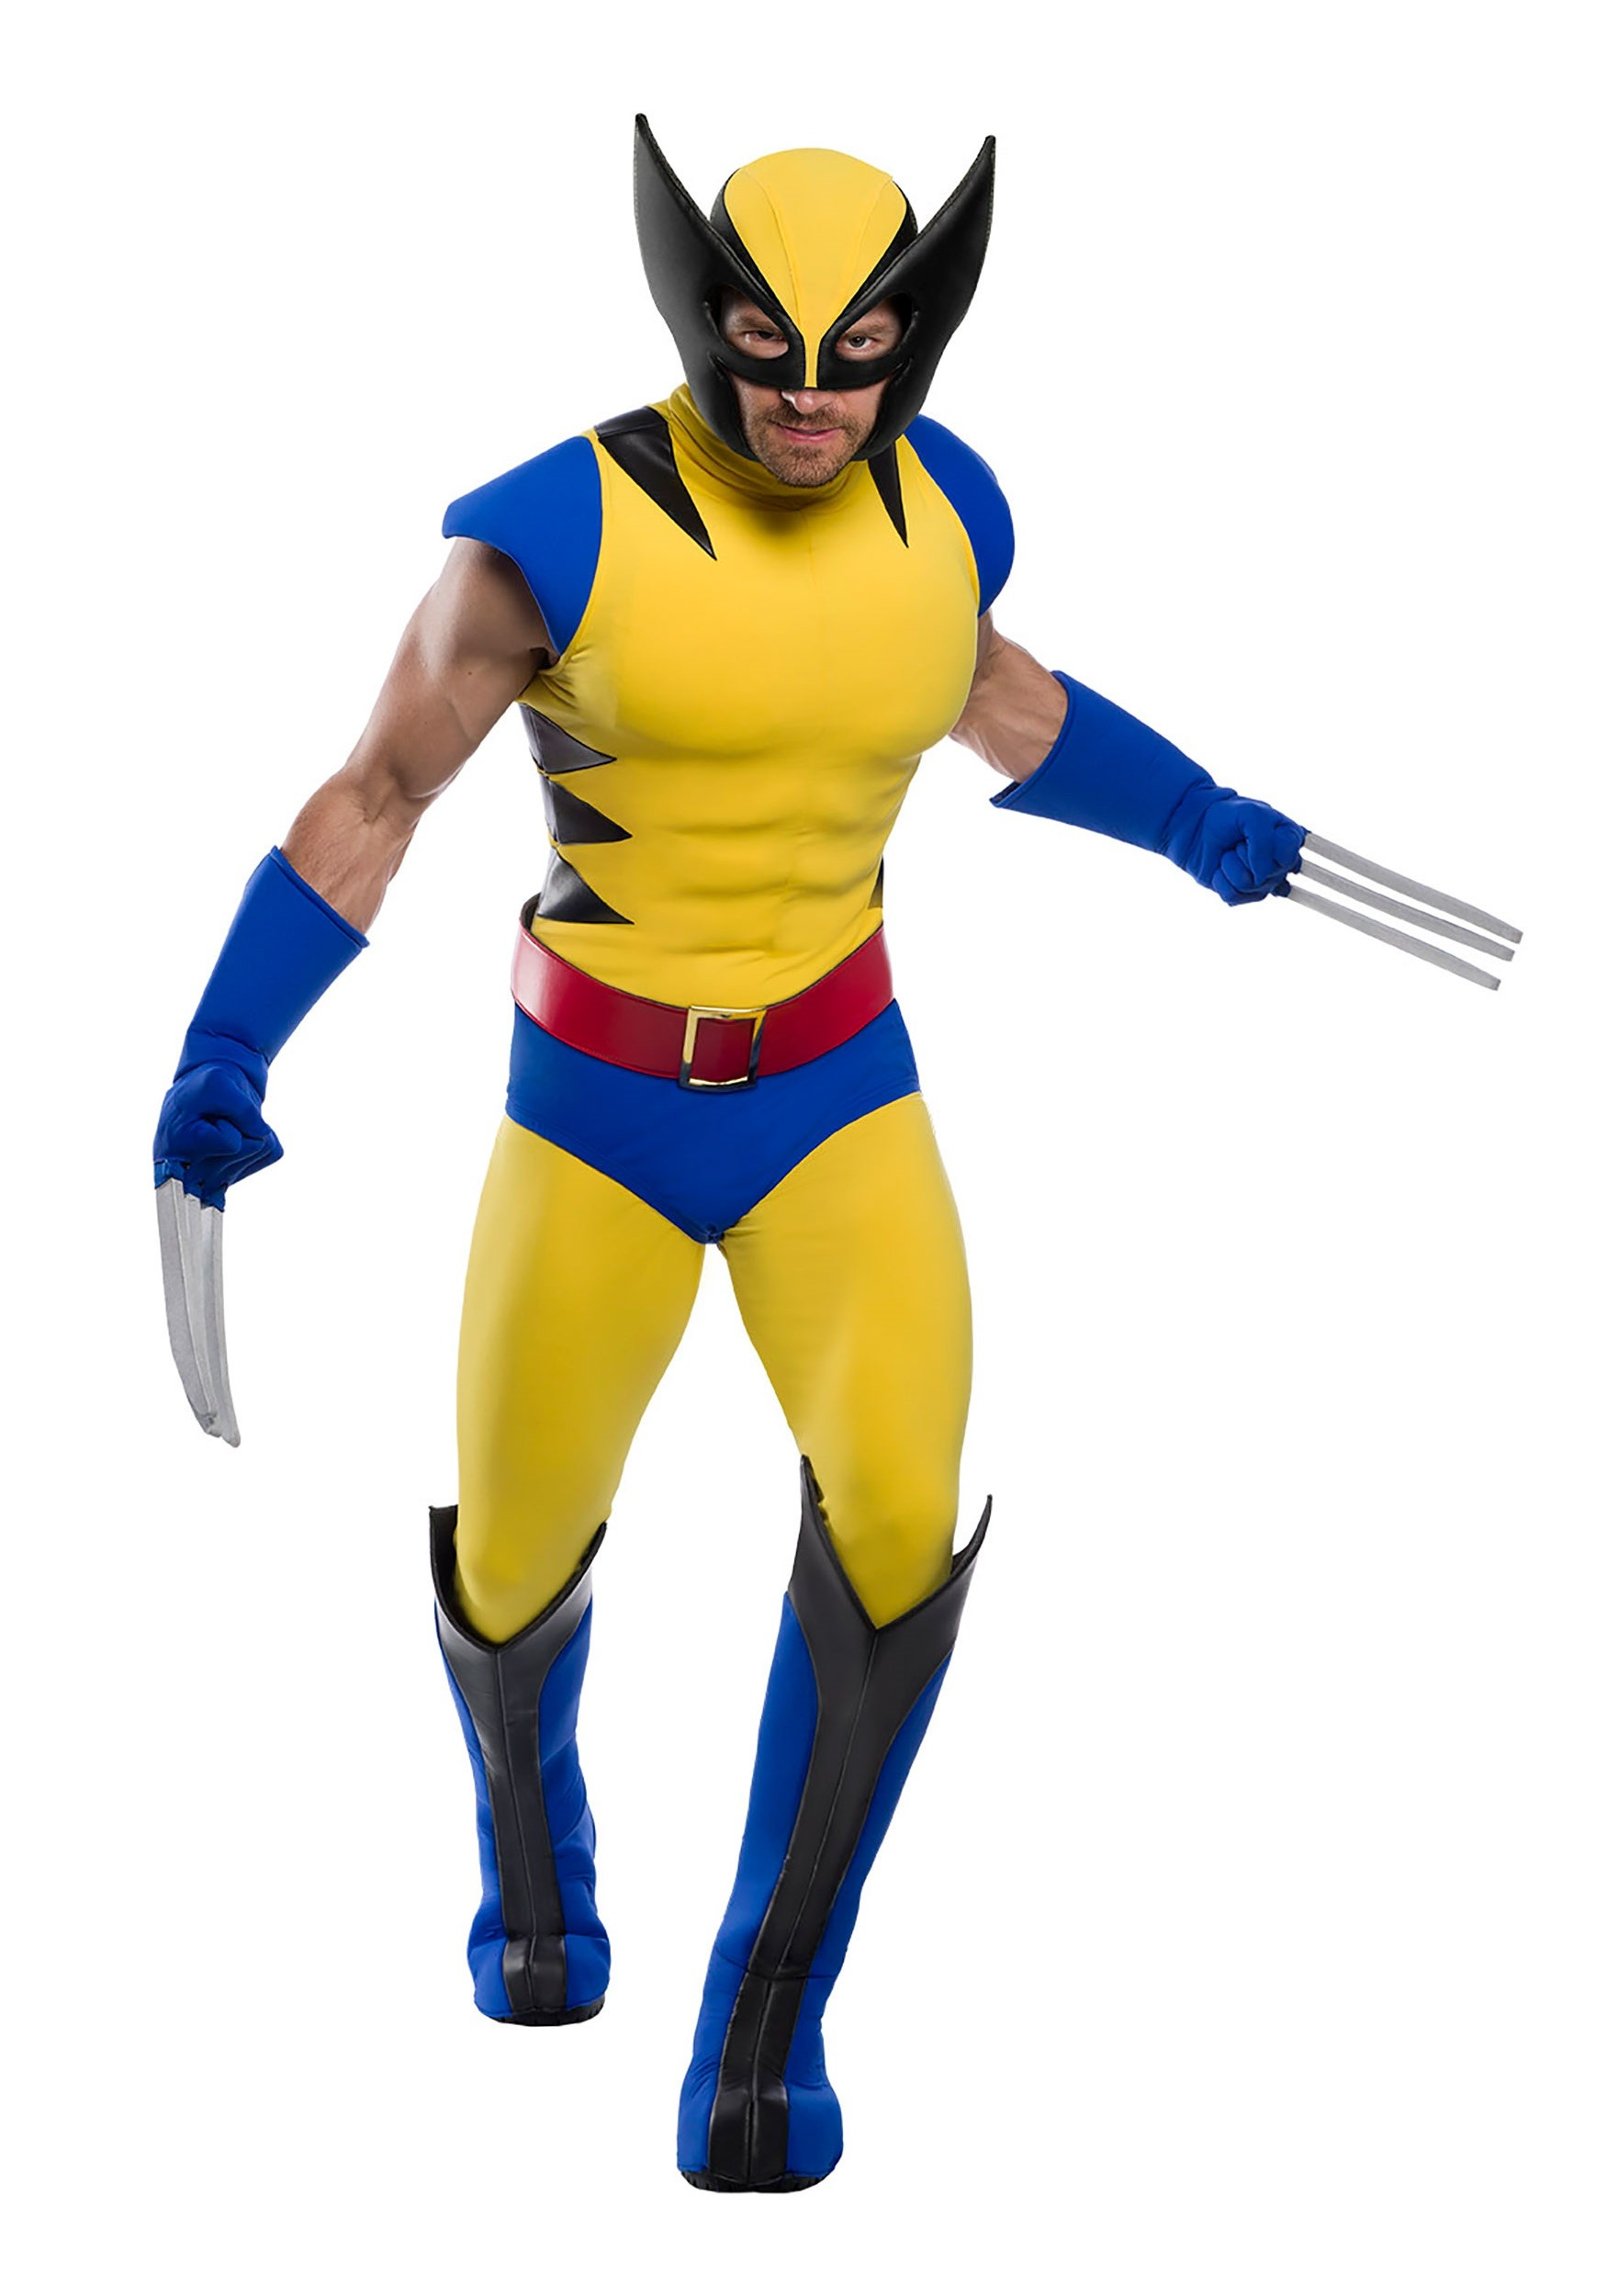 Premium Marvel Plus Size Wolverine Costume Fun Com Exclusive Shoes cover, gloves, belt, top, pants, waistcoat. premium adult plus size wolverine costume